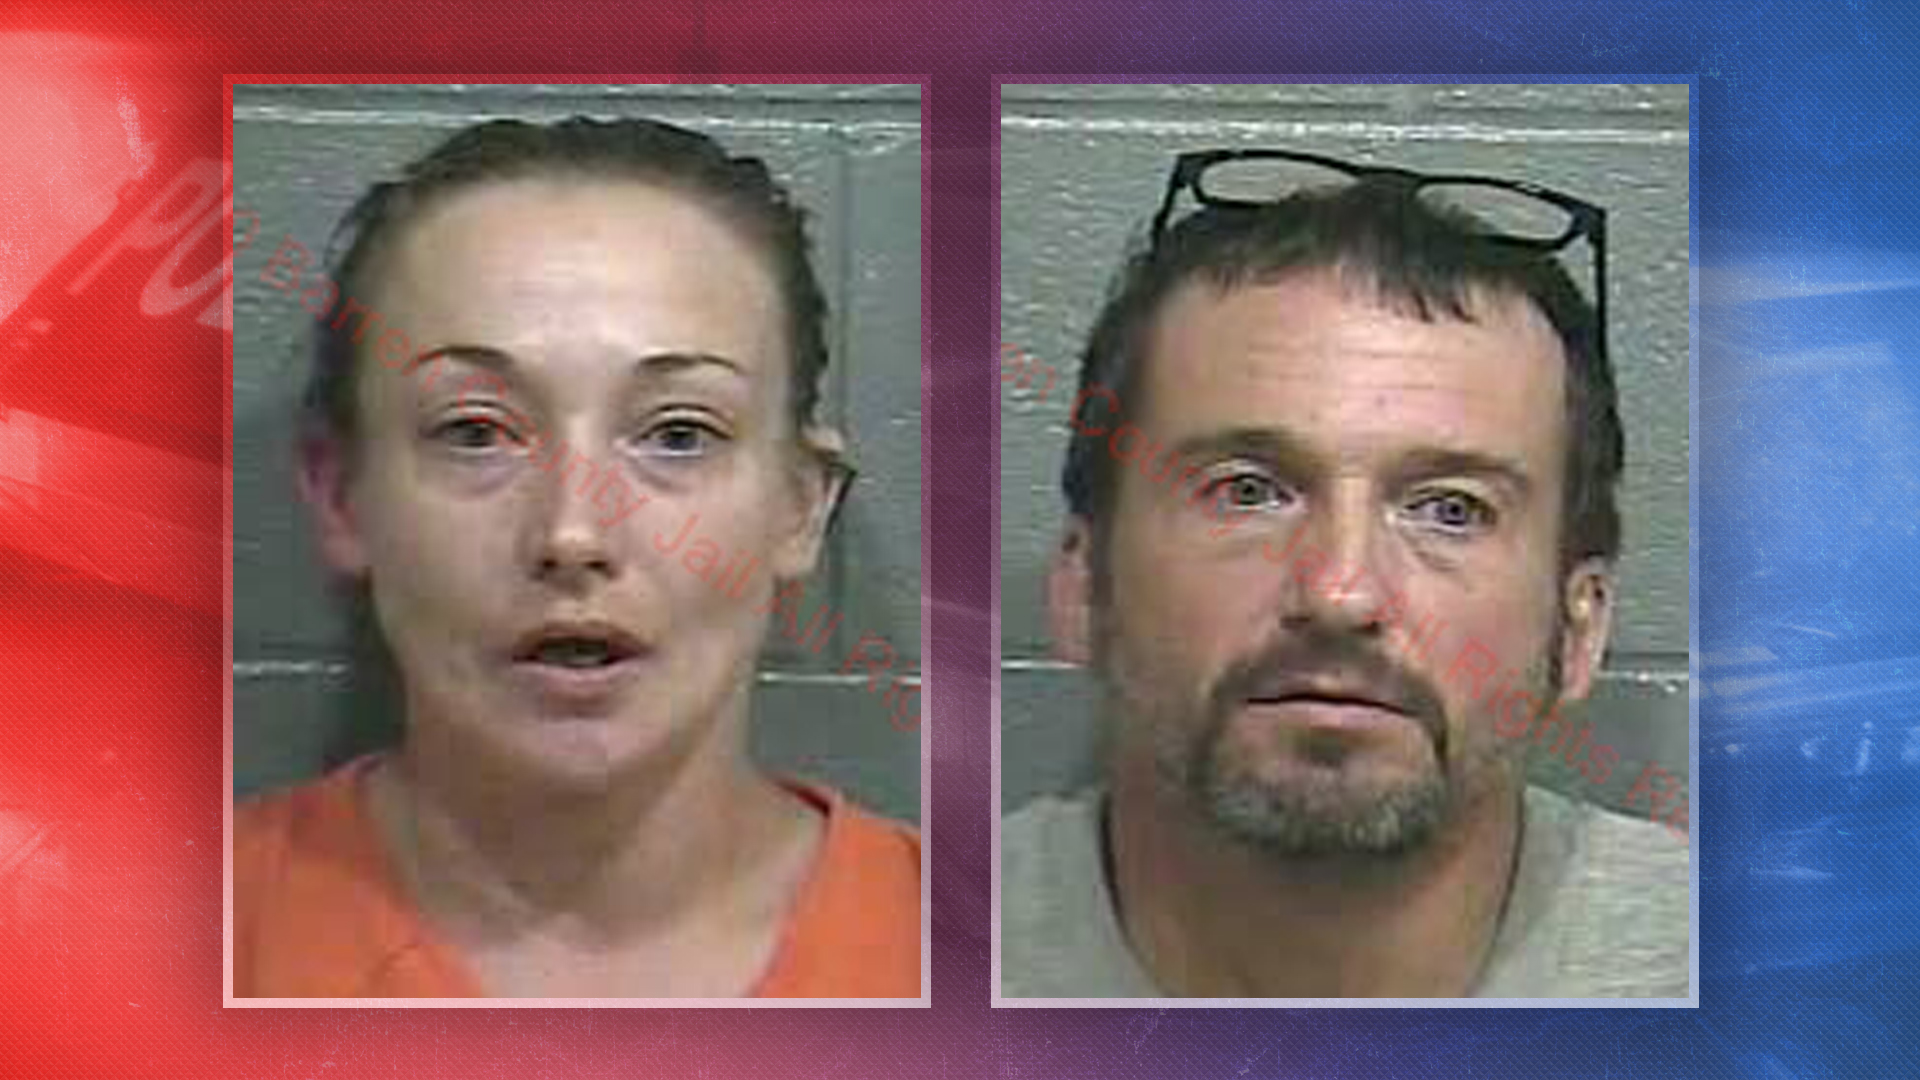 Glasgow Couple Accused Of Operating Meth Lab WNKY 40 News